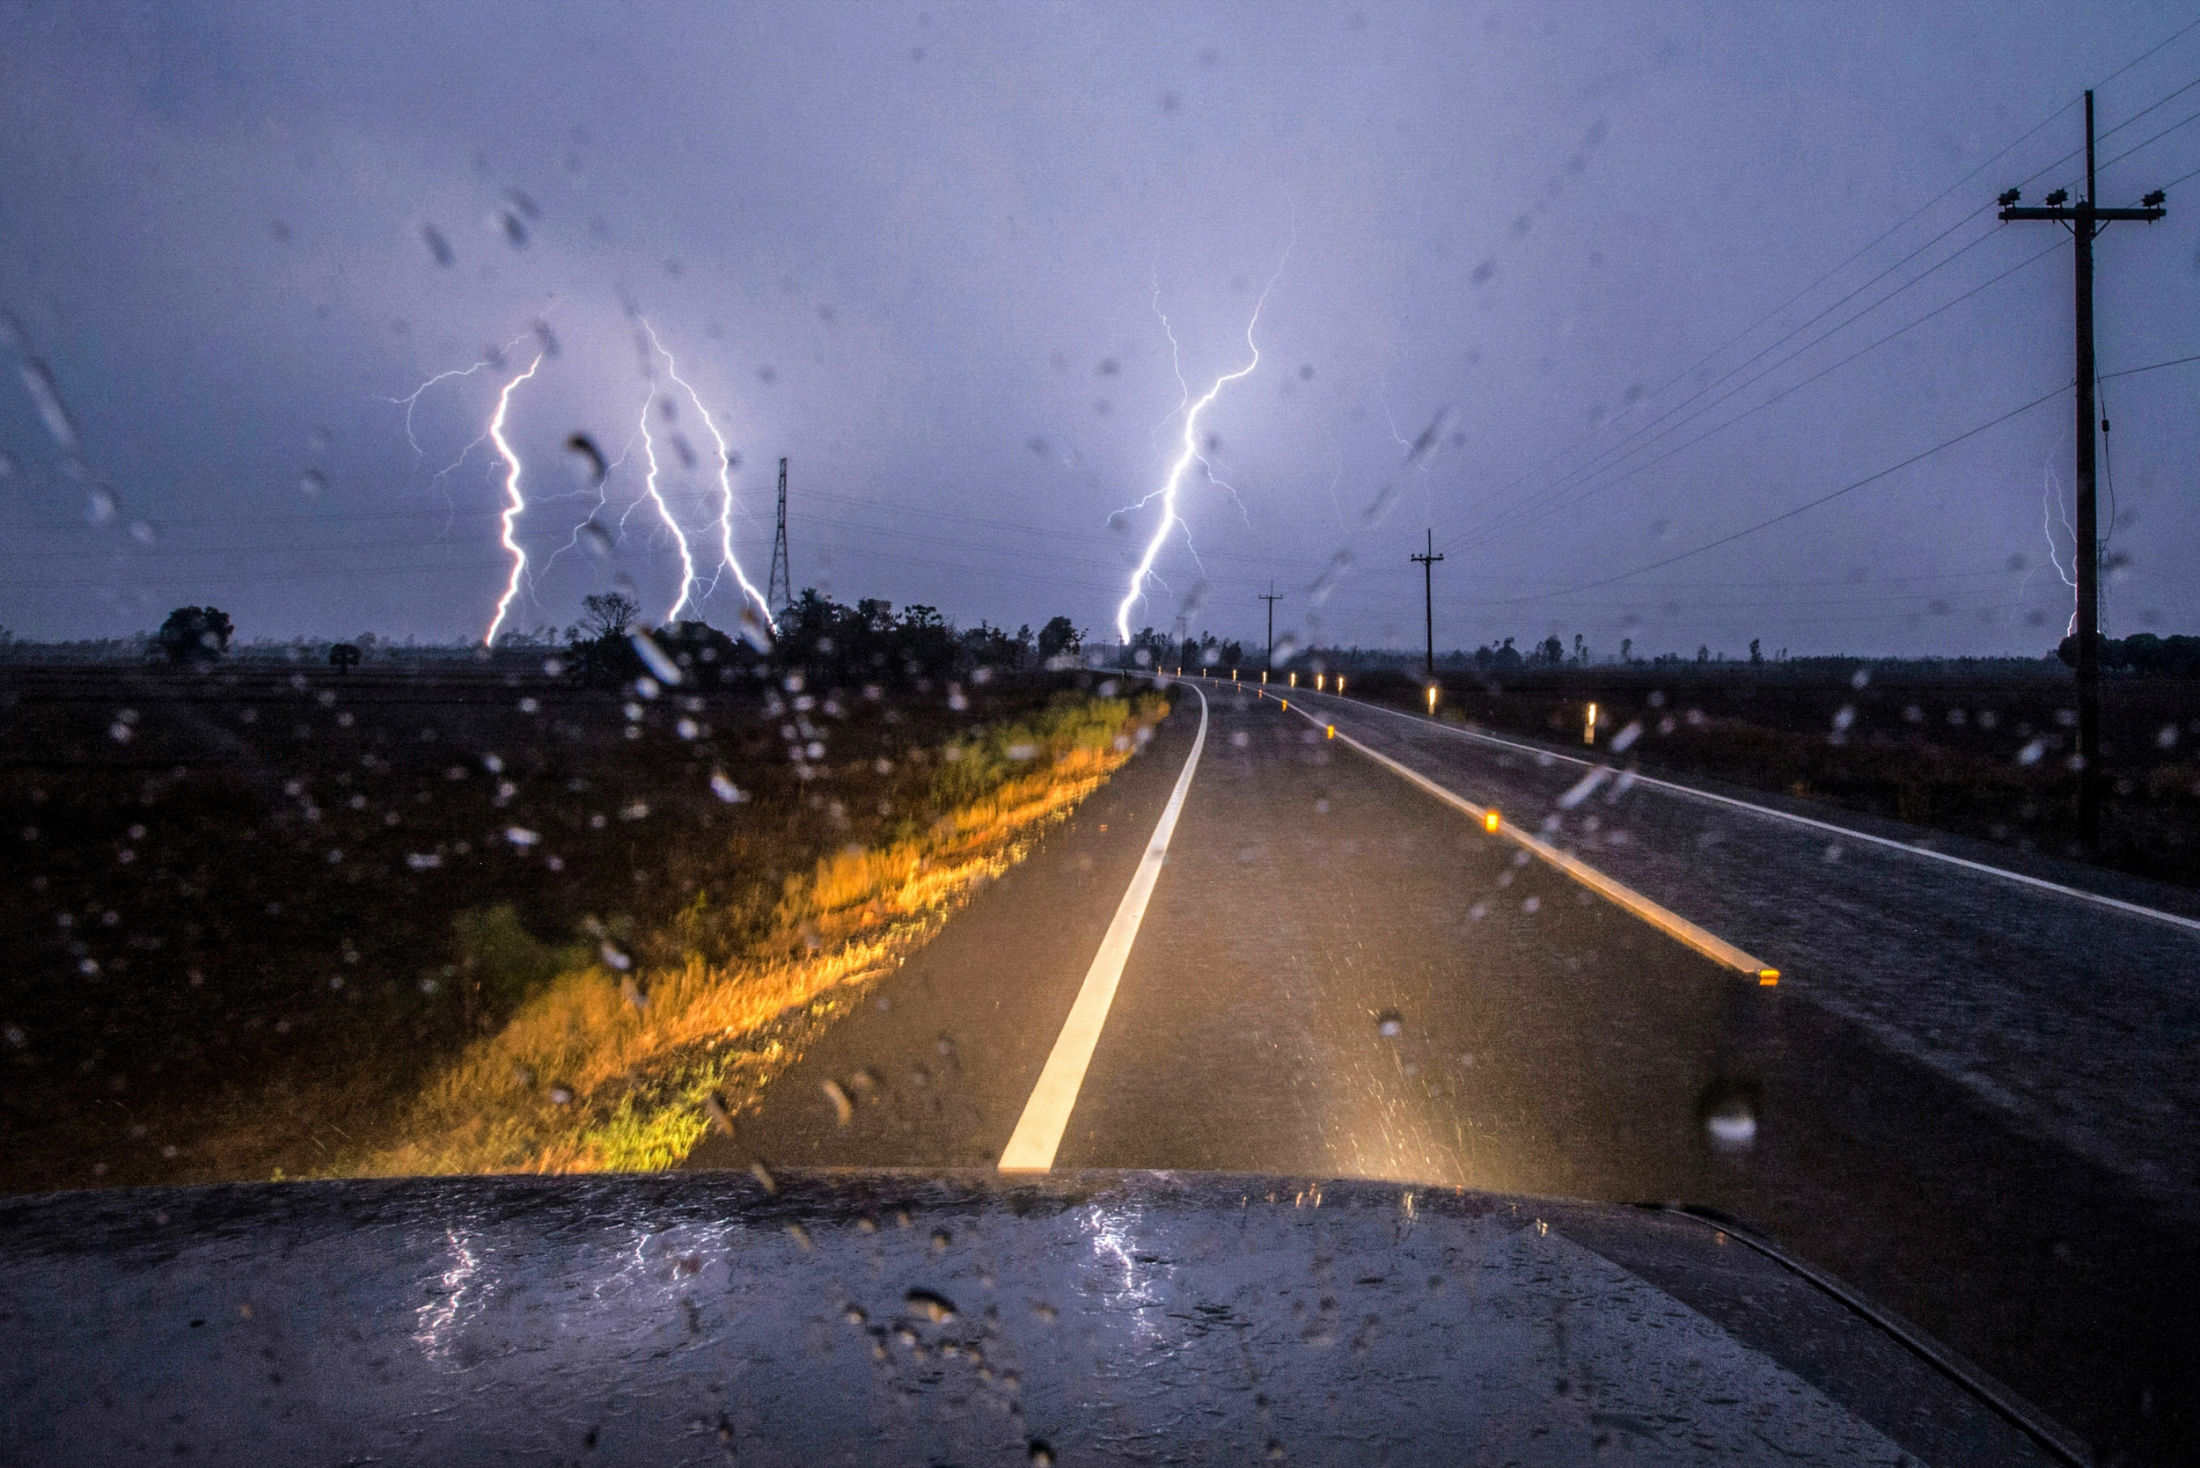 During a change of season, the extended periods of heavy drought conditions accompanied by heavy hail storms and the lightning strike in many areas in Thailand.